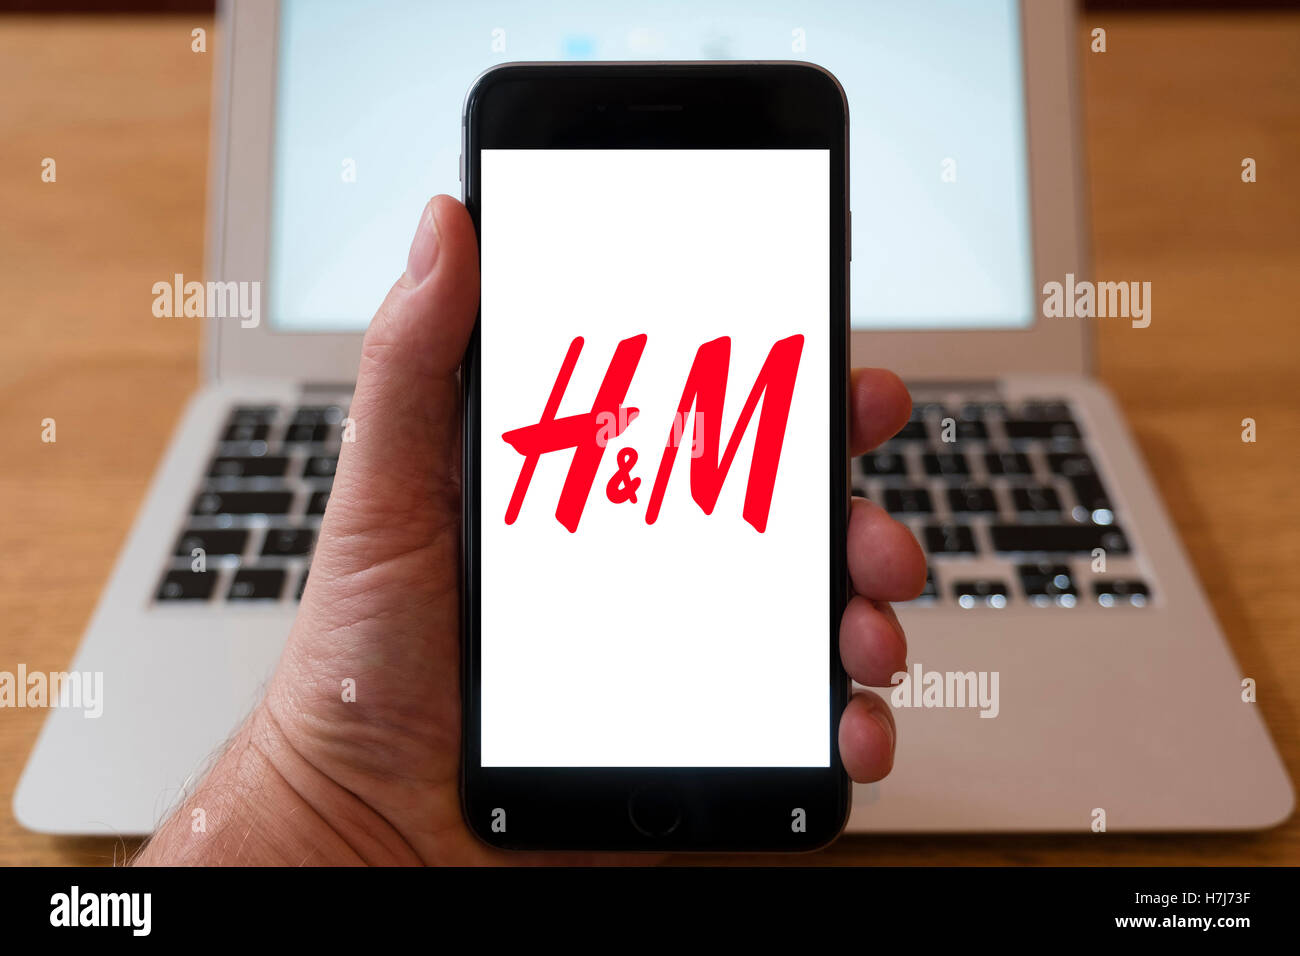 Using iPhone smartphone to display logo of H&M high street fashion retailer - Stock Image